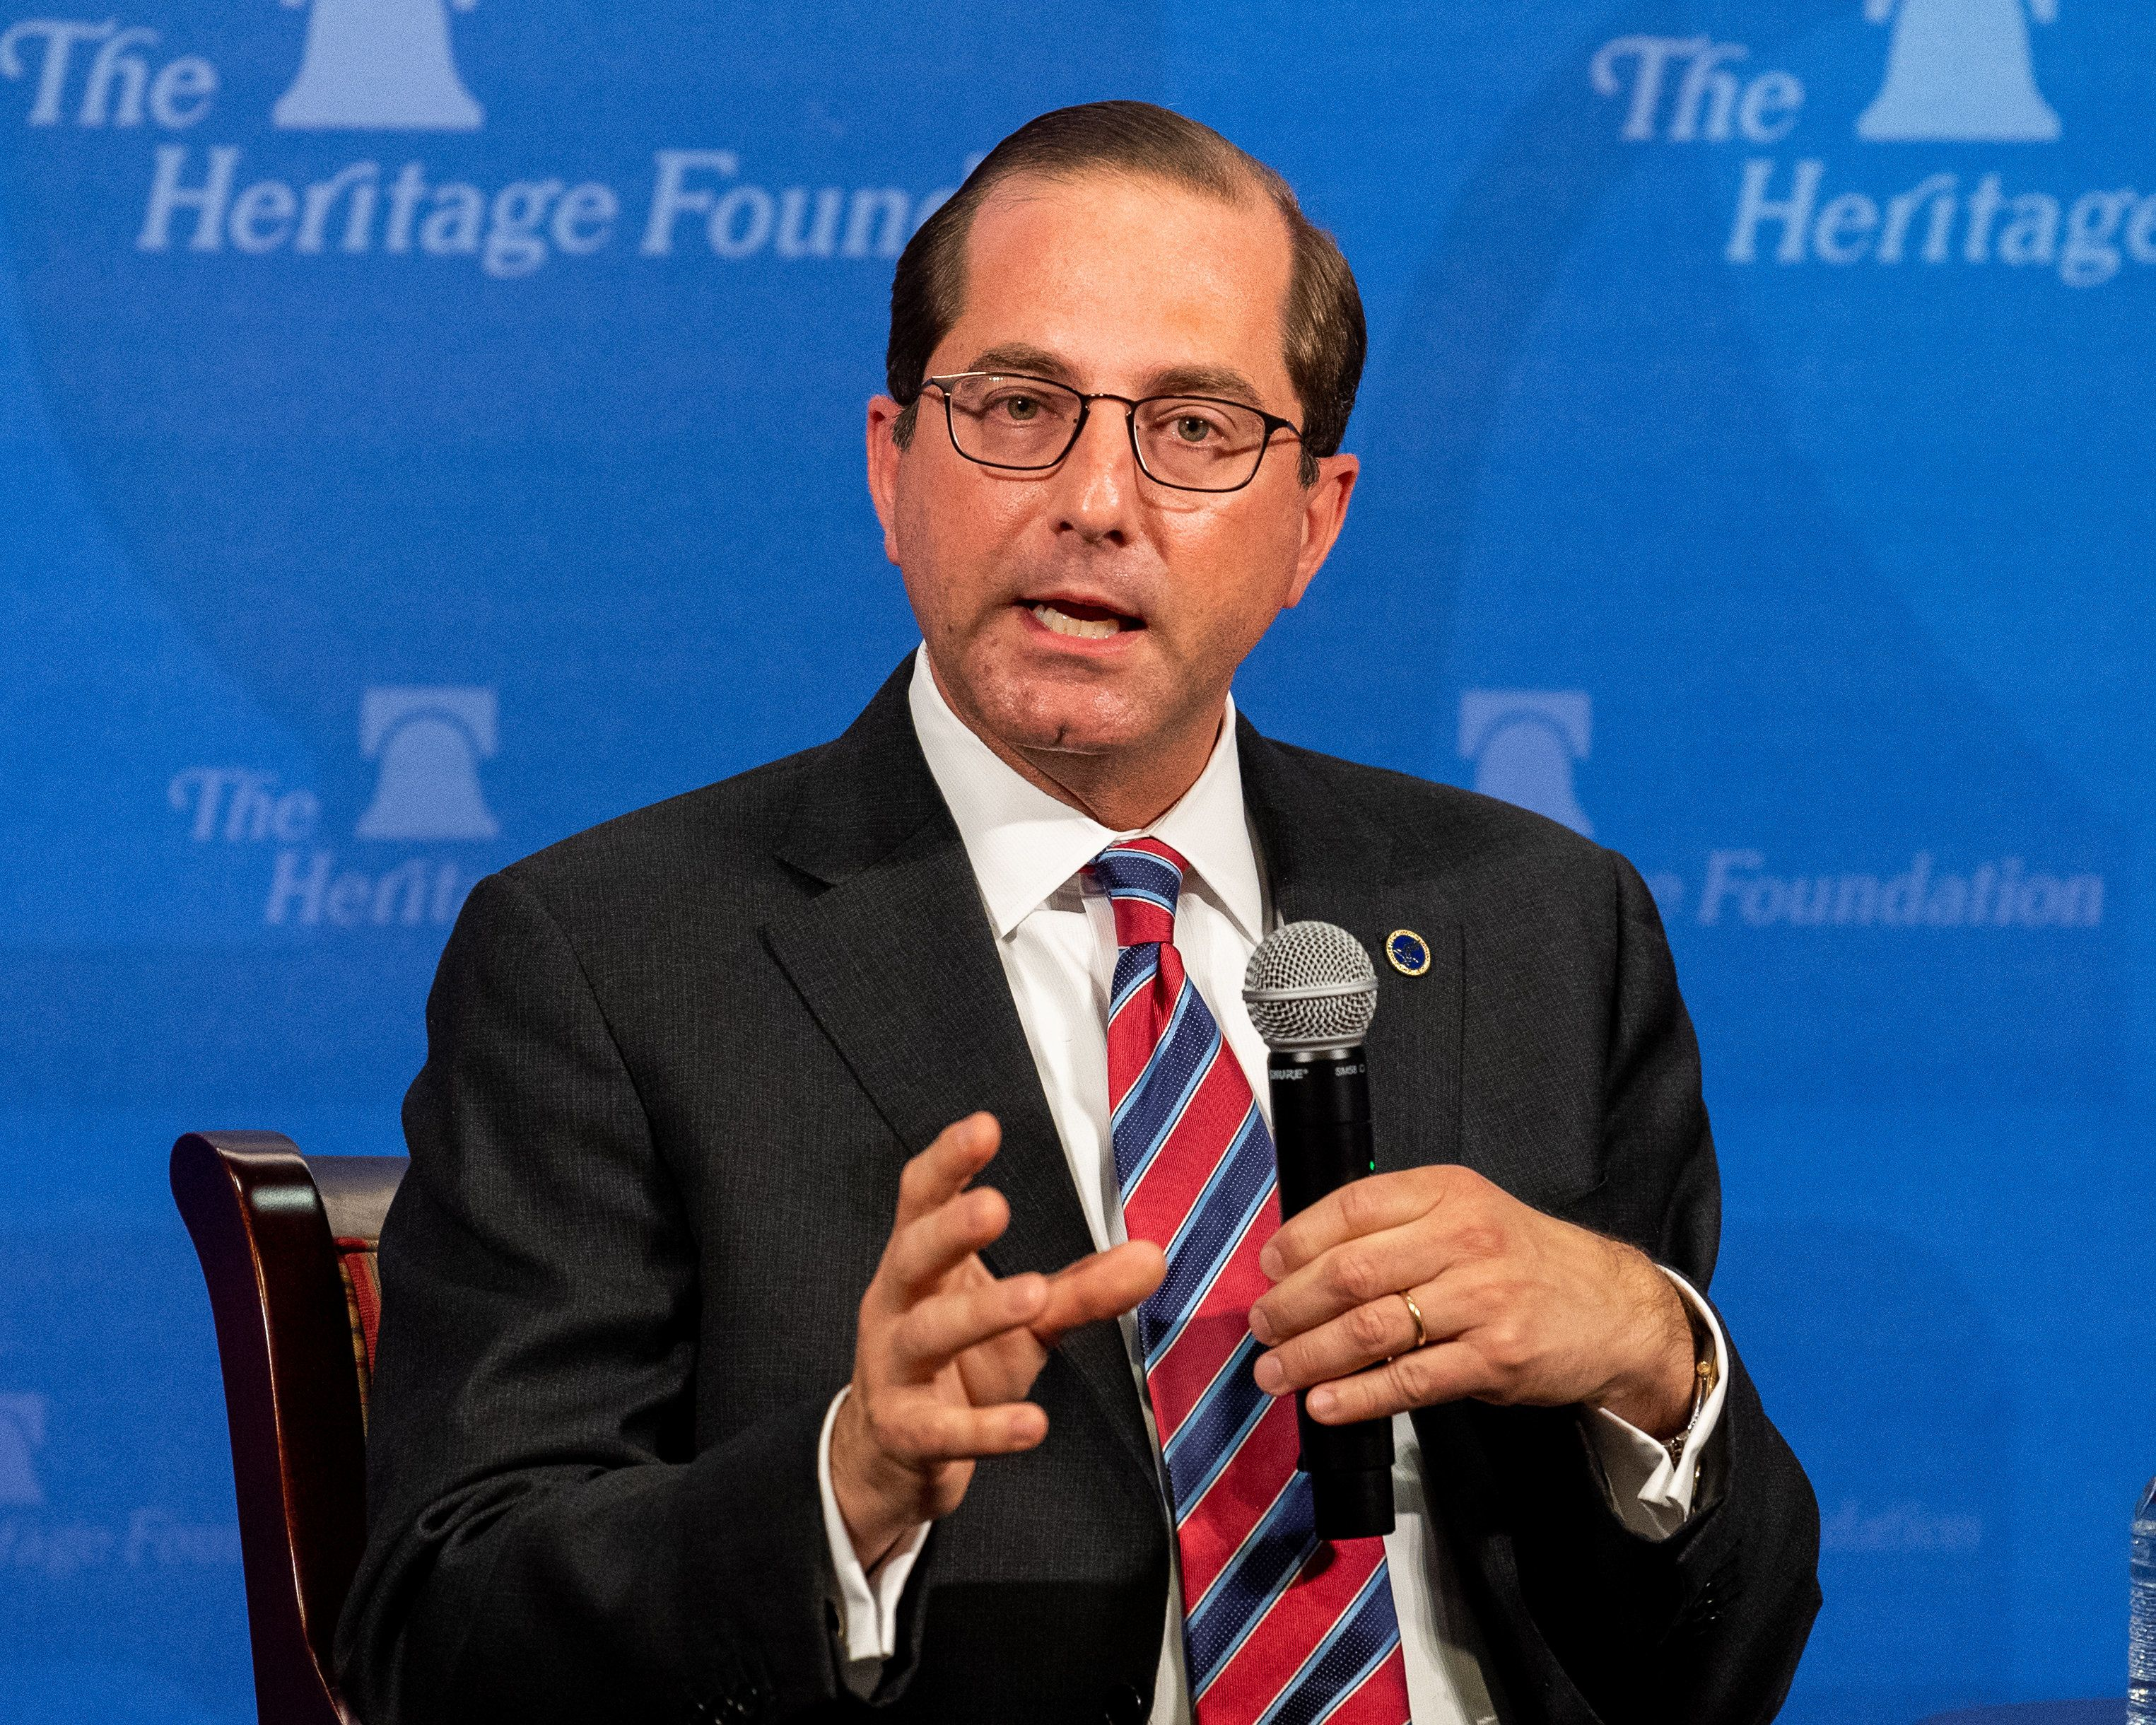 WASHINGTON, DC, UNITED STATES - 2018/07/26: Alex Azar, Secretary, U.S. Department of Health and Human Services, speaking at the Heritage Foundation in Washington, DC. (Photo by Michael Brochstein/SOPA Images/LightRocket via Getty Images)